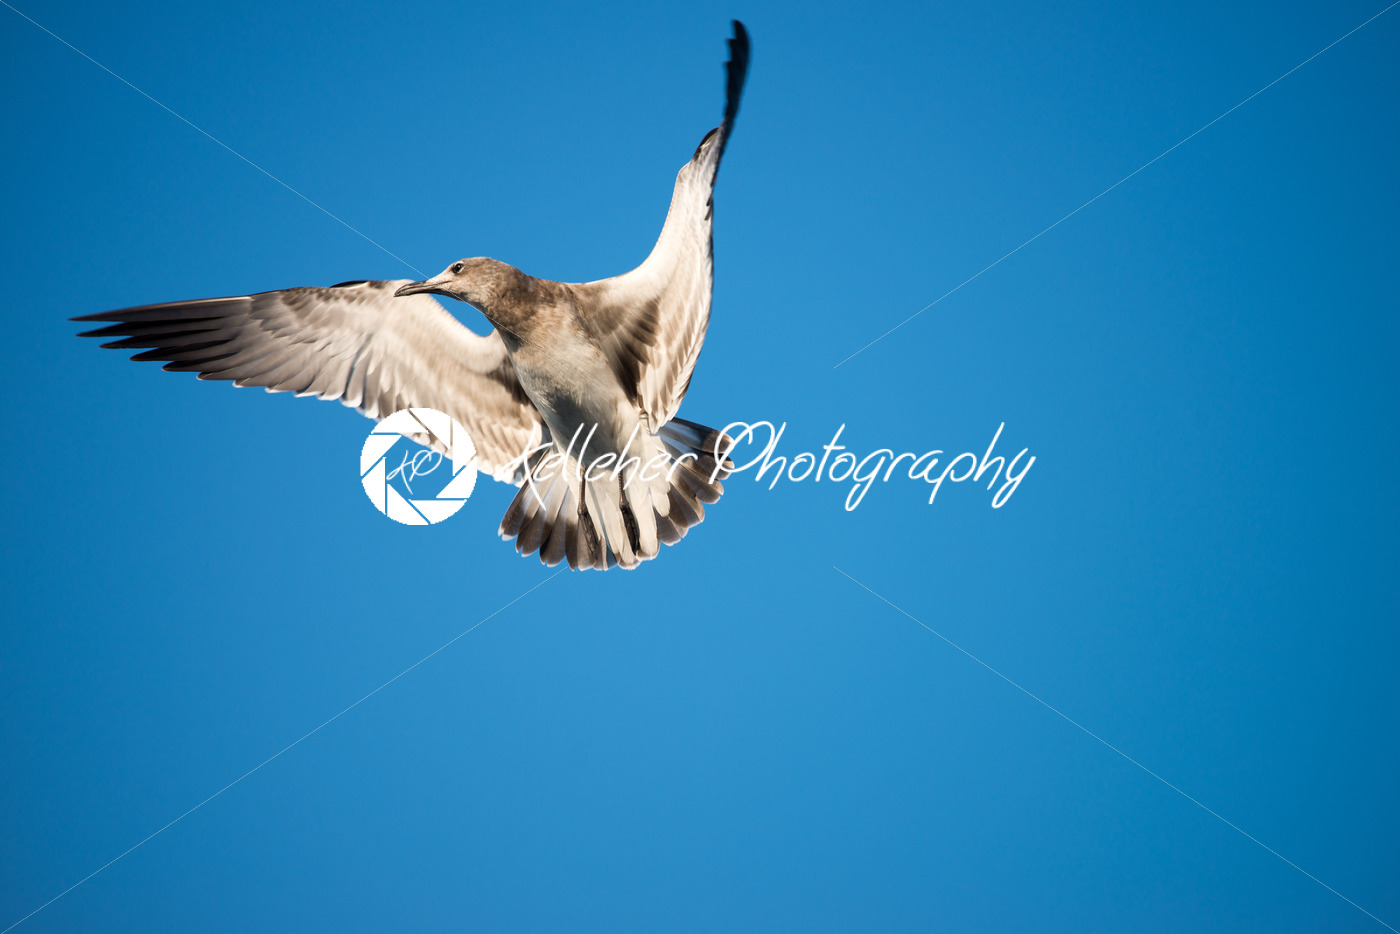 Seagull in flight against a cloudless blue sky background - Kelleher Photography Store